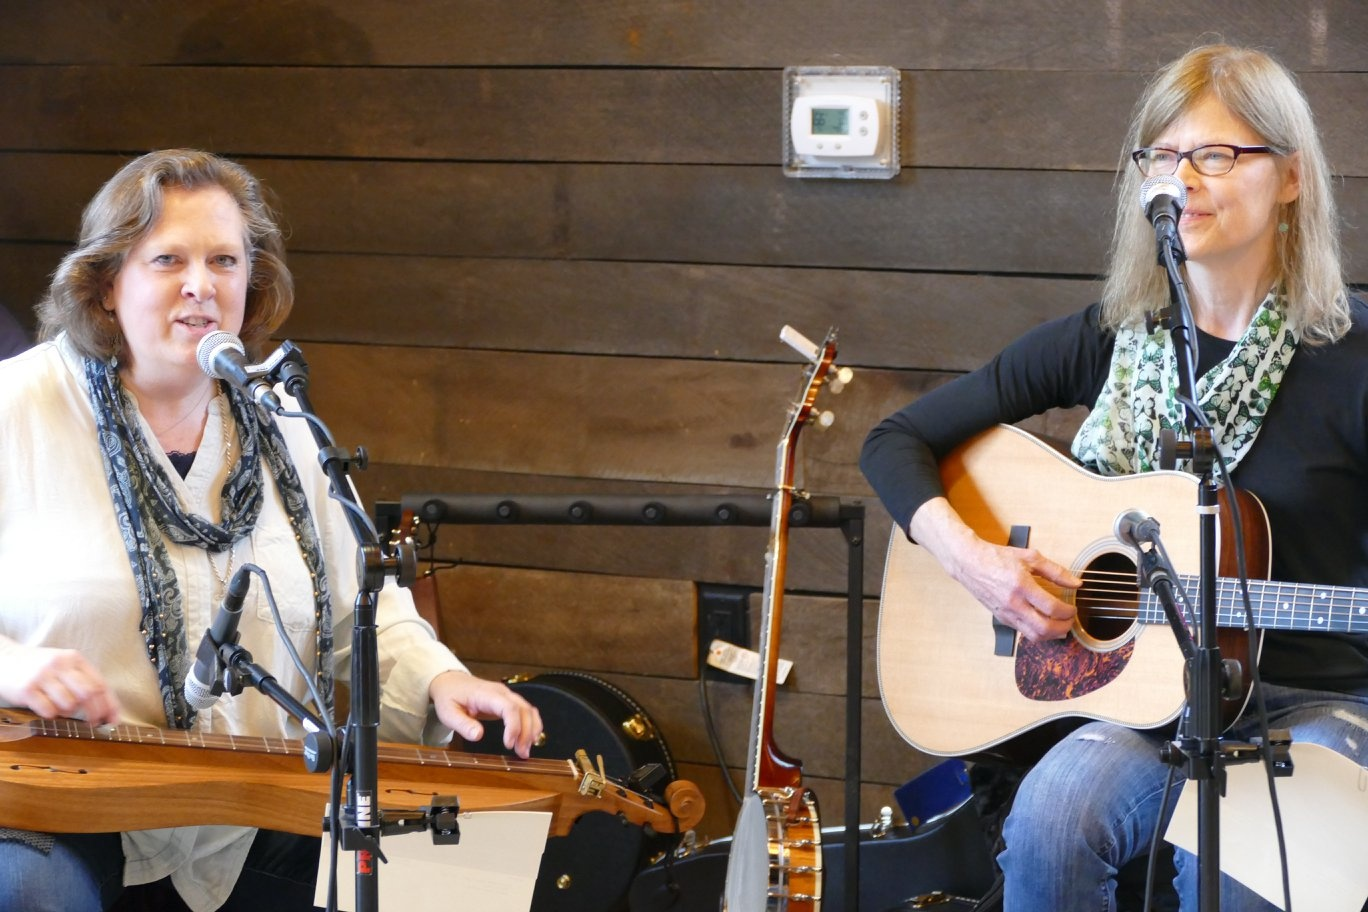 Lee Cagle and Mary Baddour, Butterfly Gap, at Ag Day, Germantown Farm Park 2018